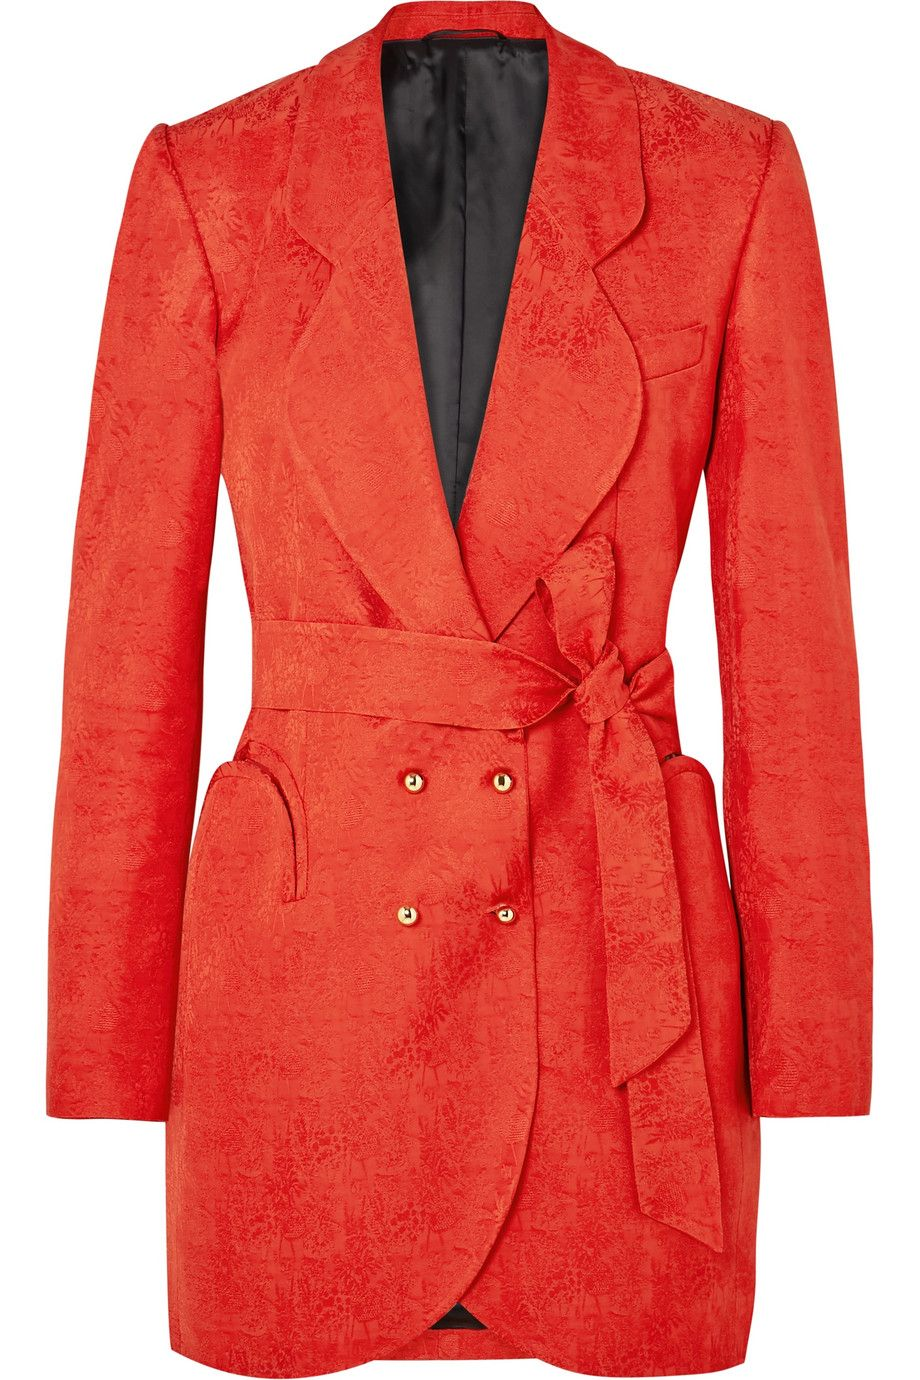 shop-blaze-milano-sunshine-red-satin-jacquard-blazer-mini-dress